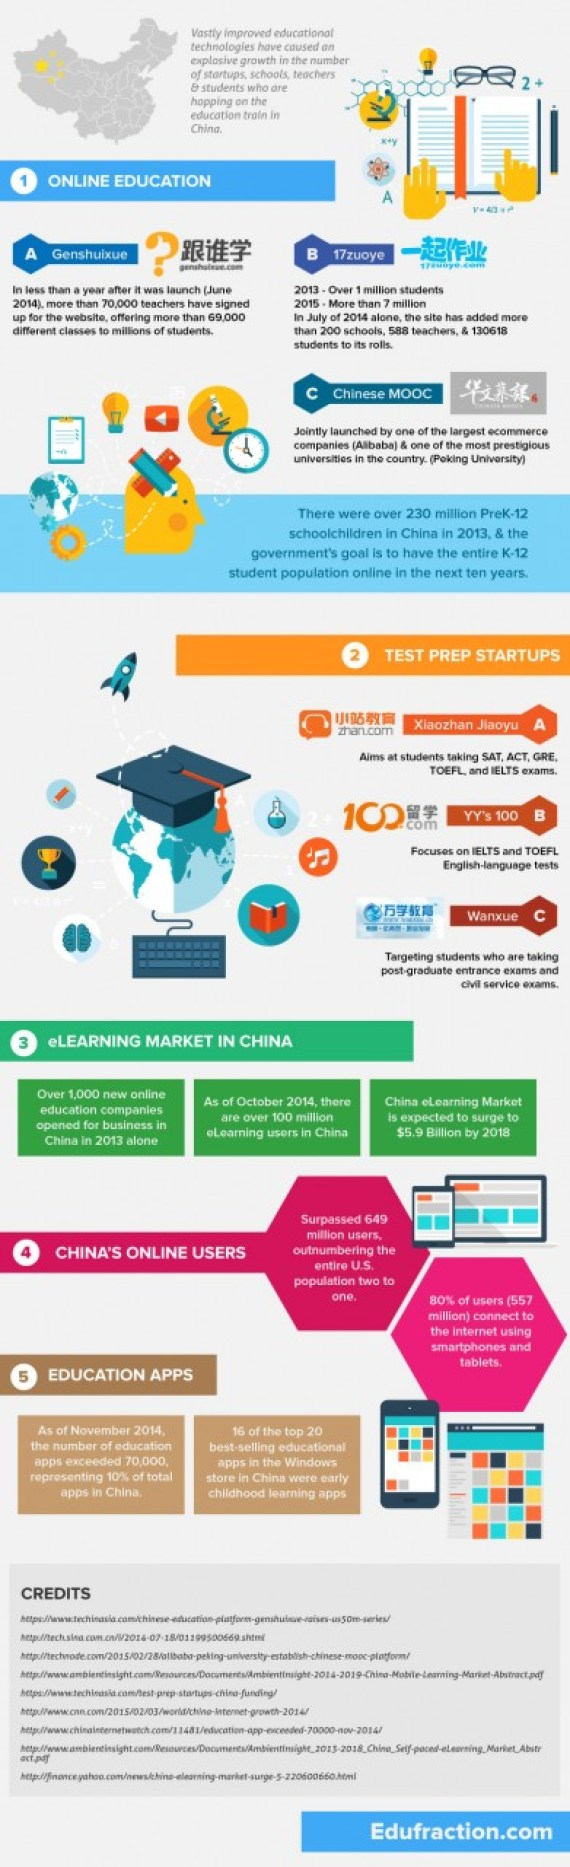 rise-of-educational-technology-in-china-infographic